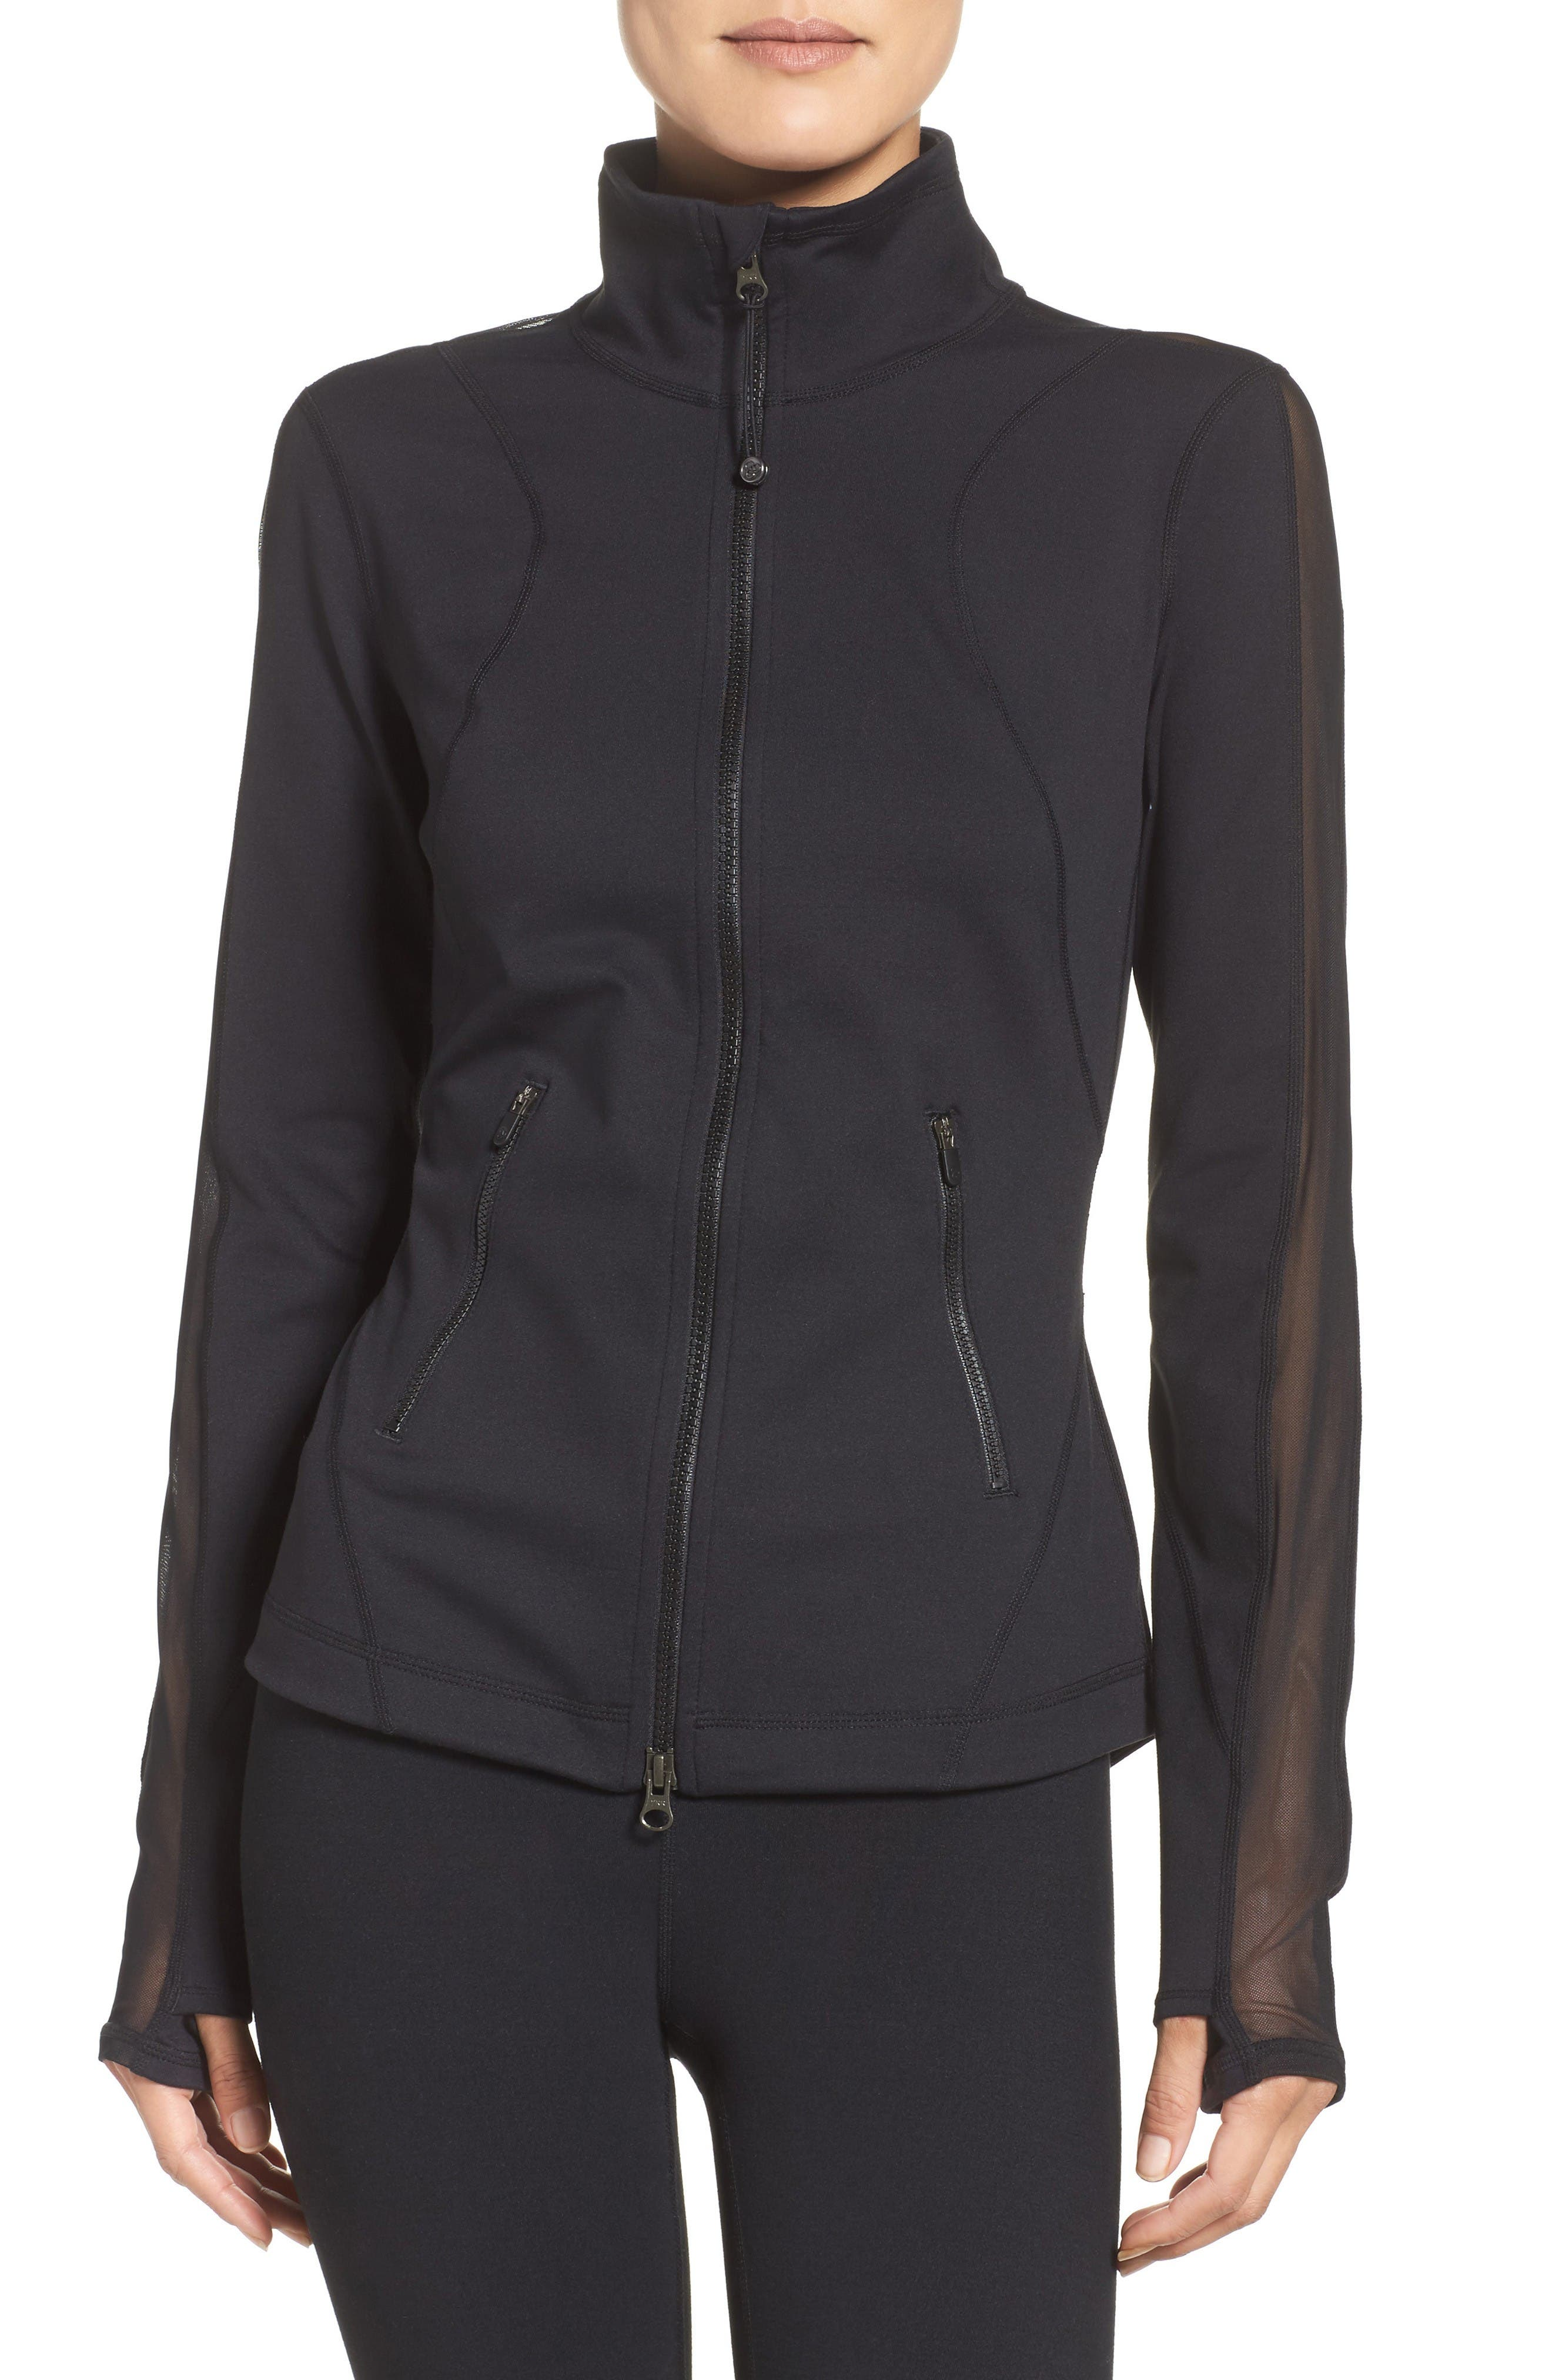 ZELLA Stardust Training Jacket